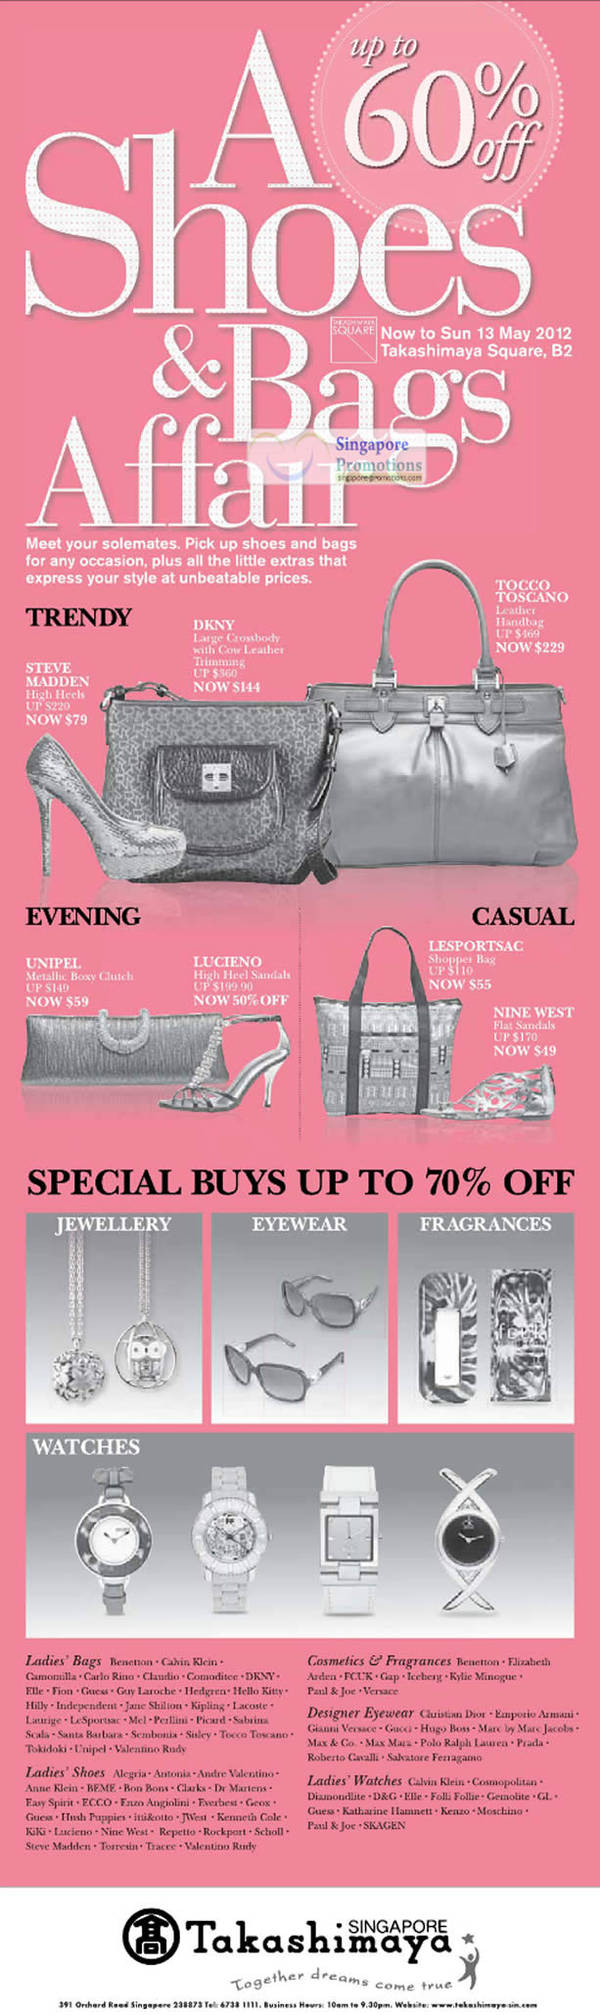 bb237f70f50d Takashimaya A Shoes   Bags Affair Up To 60% Off Promotion 26 Apr – 13 May  2012 UPDATED 11 May 2012